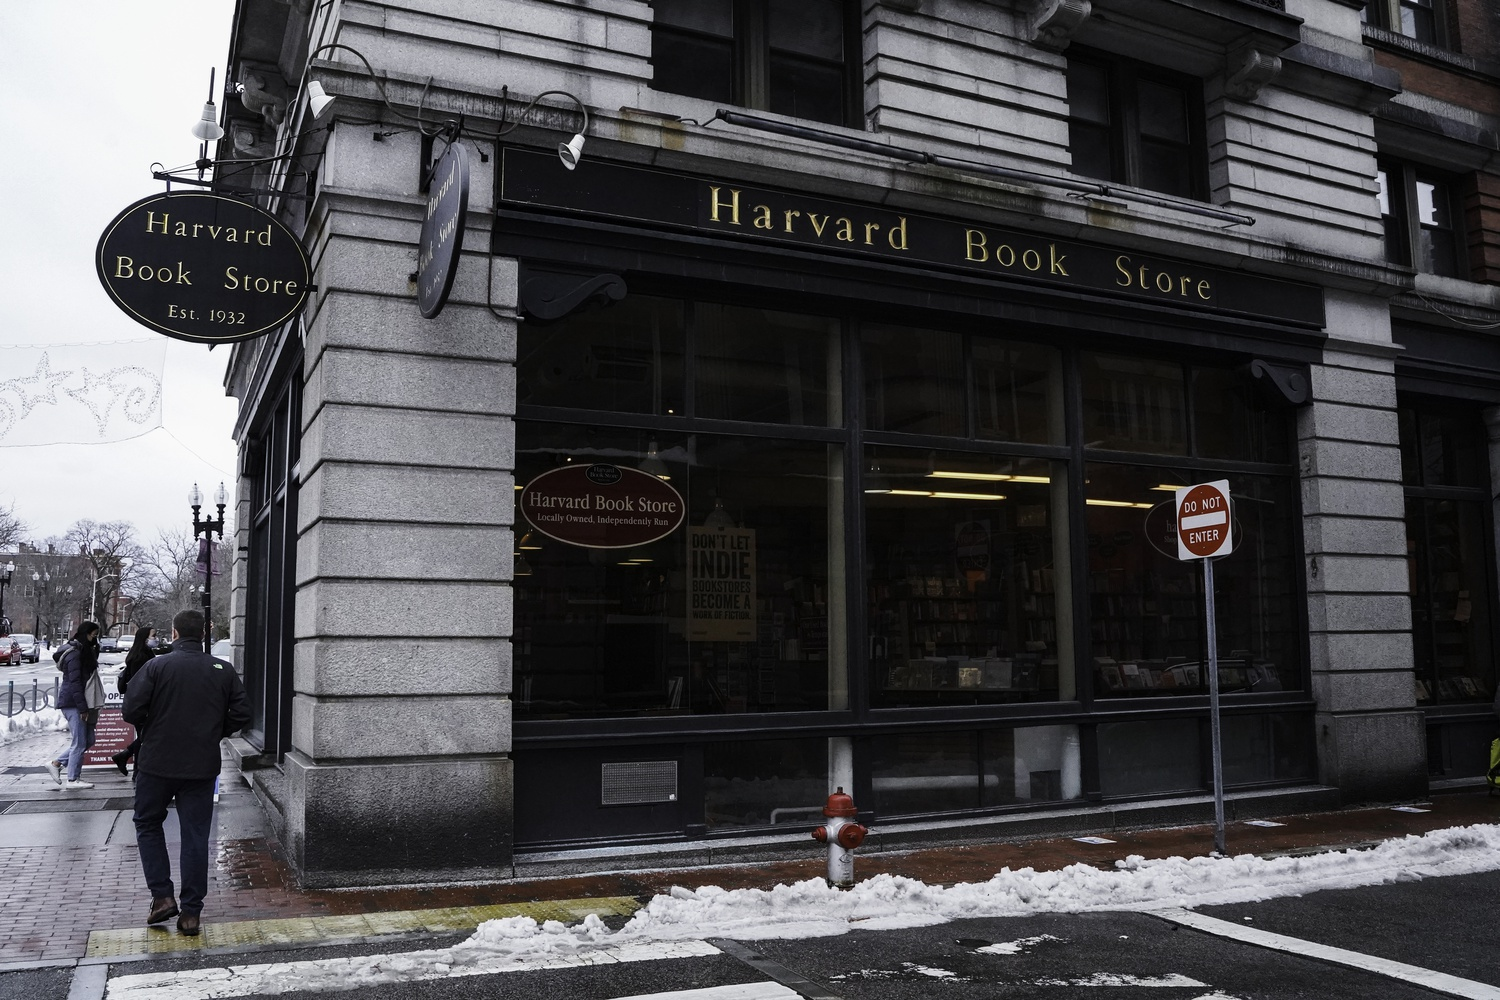 Harvard Book Store general manager Alex W. Meriwether said the store's expenses are up and sales are down after nearly a year operating during the coronavirus pandemic.